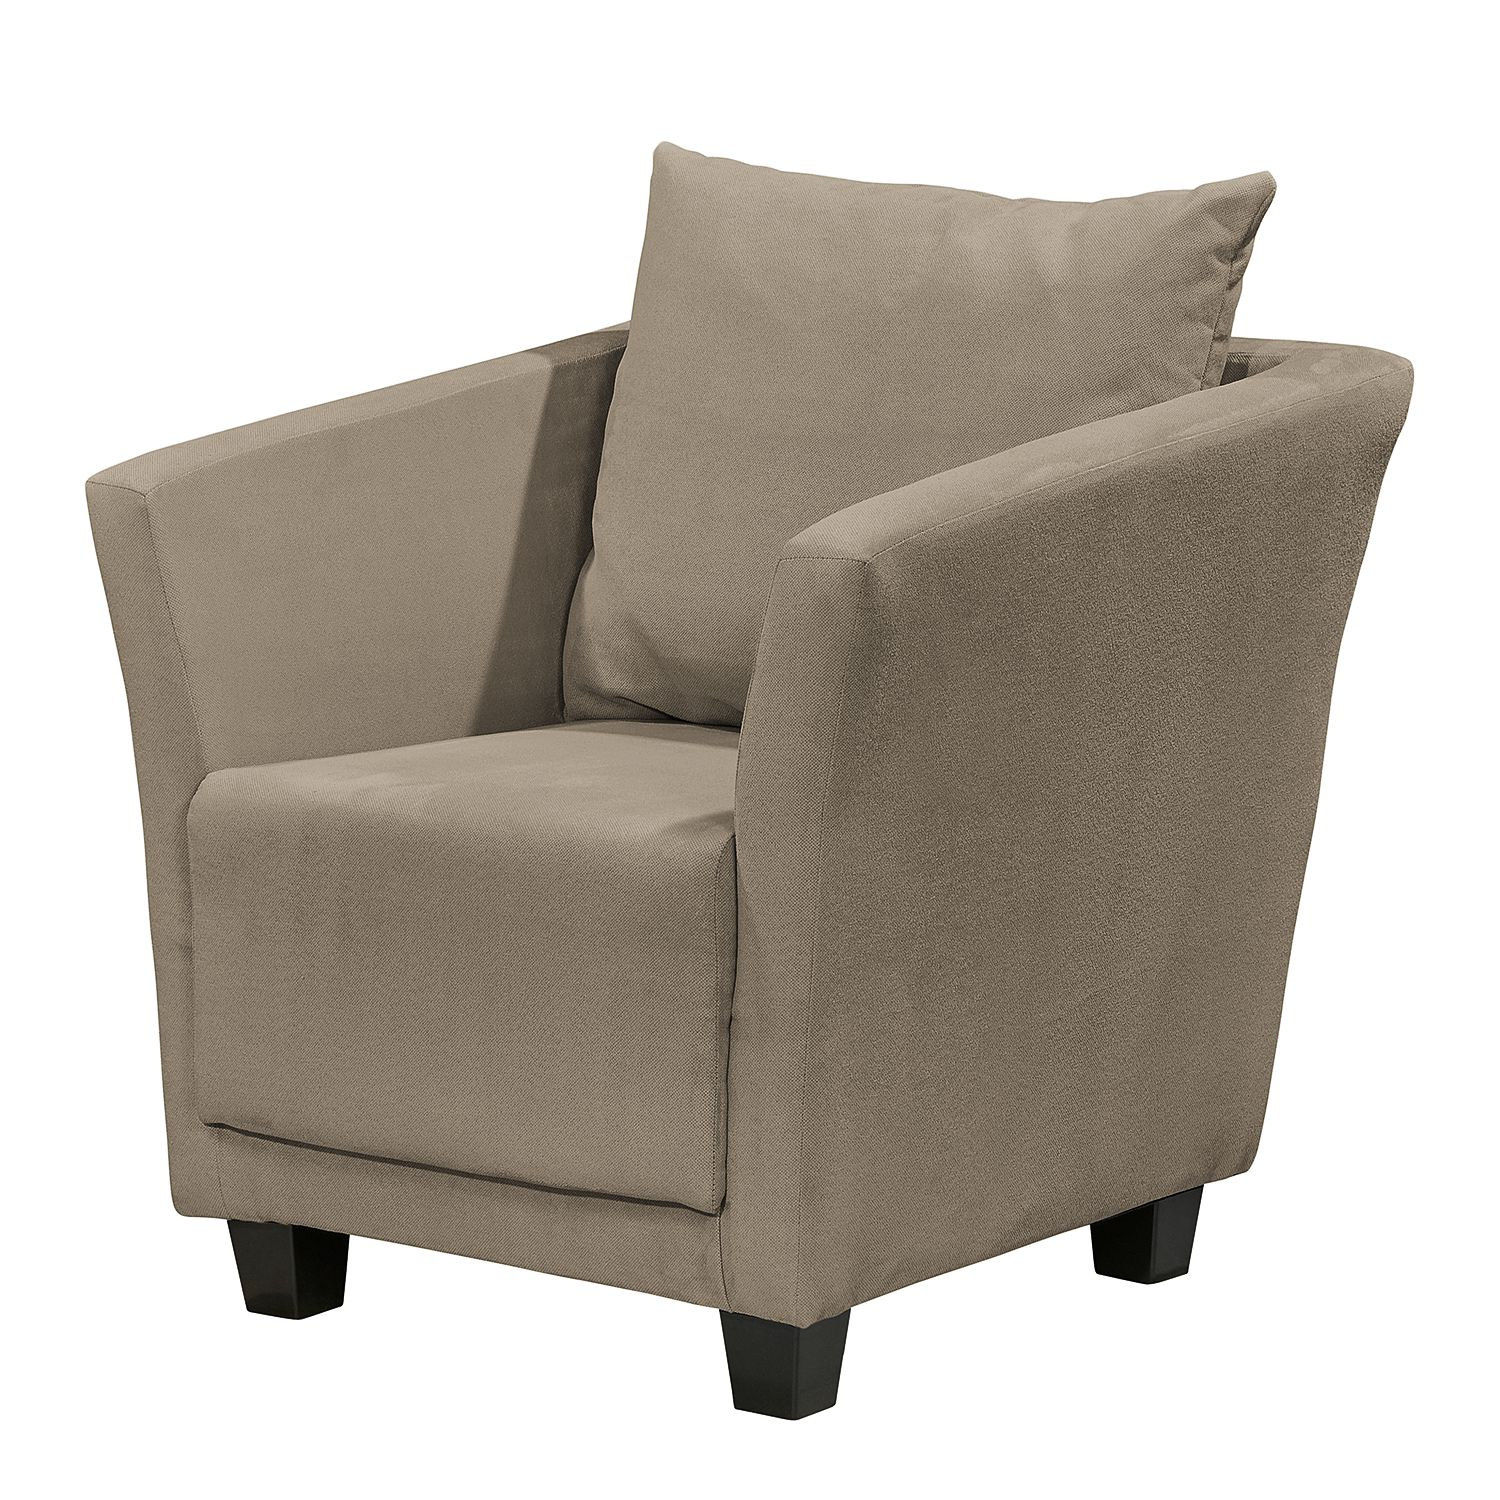 Fauteuil Ondara - Microfibre - Taupe, mooved